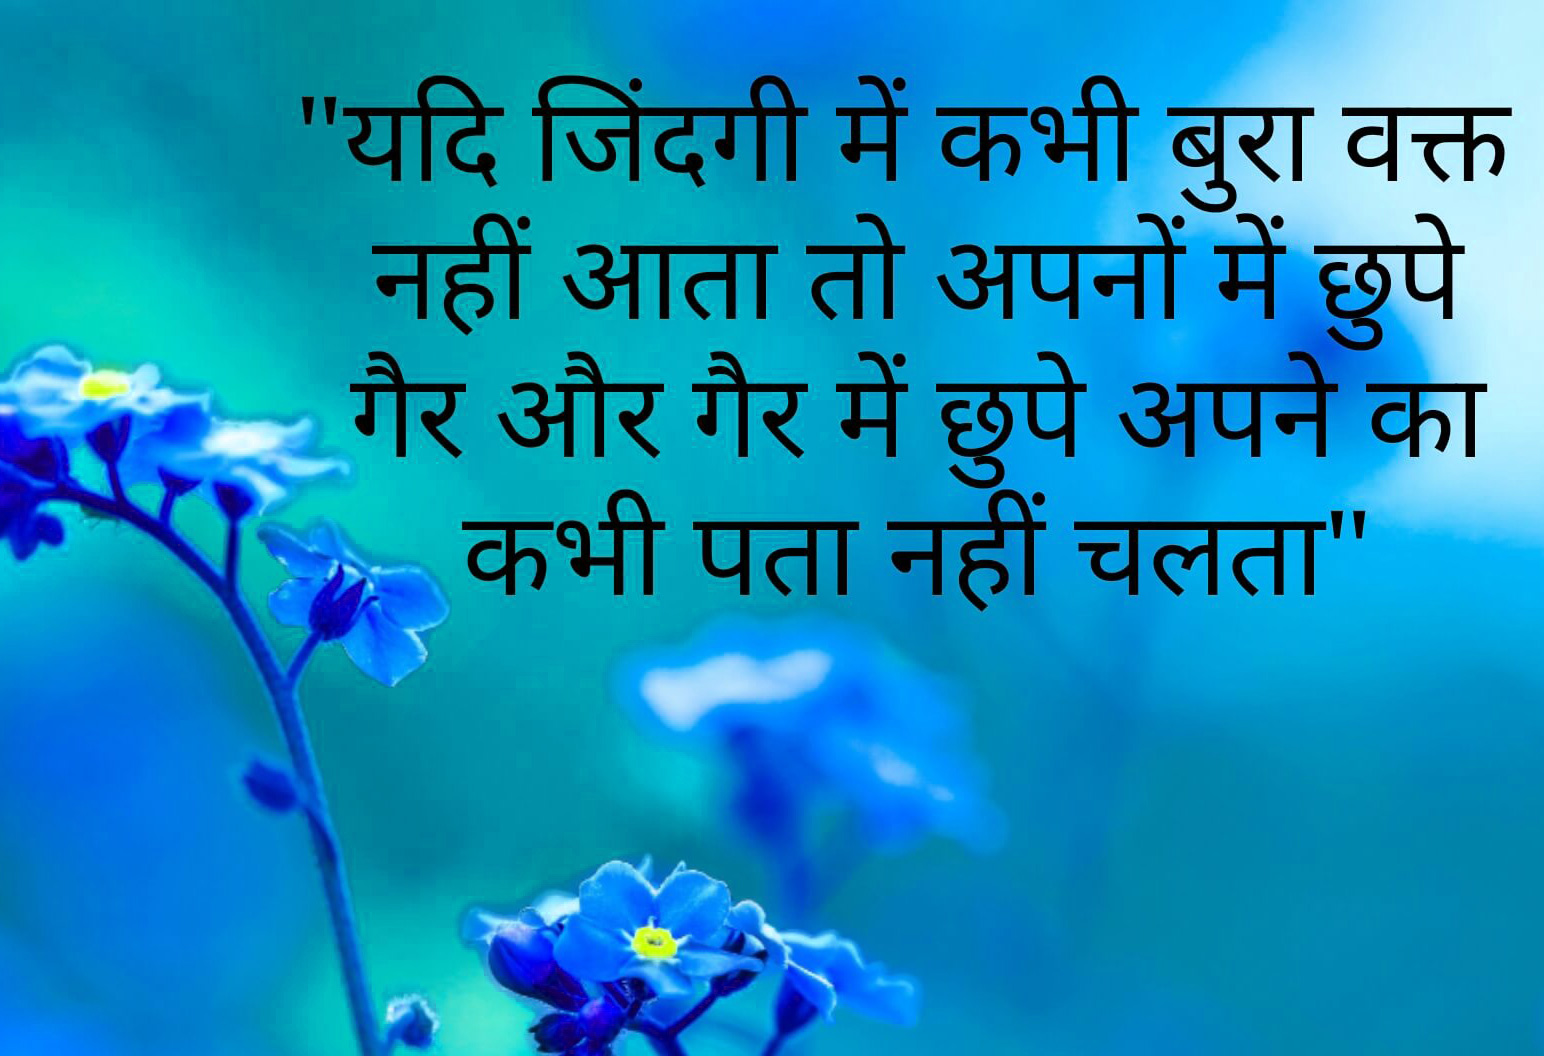 Shayari Wallpaper 40